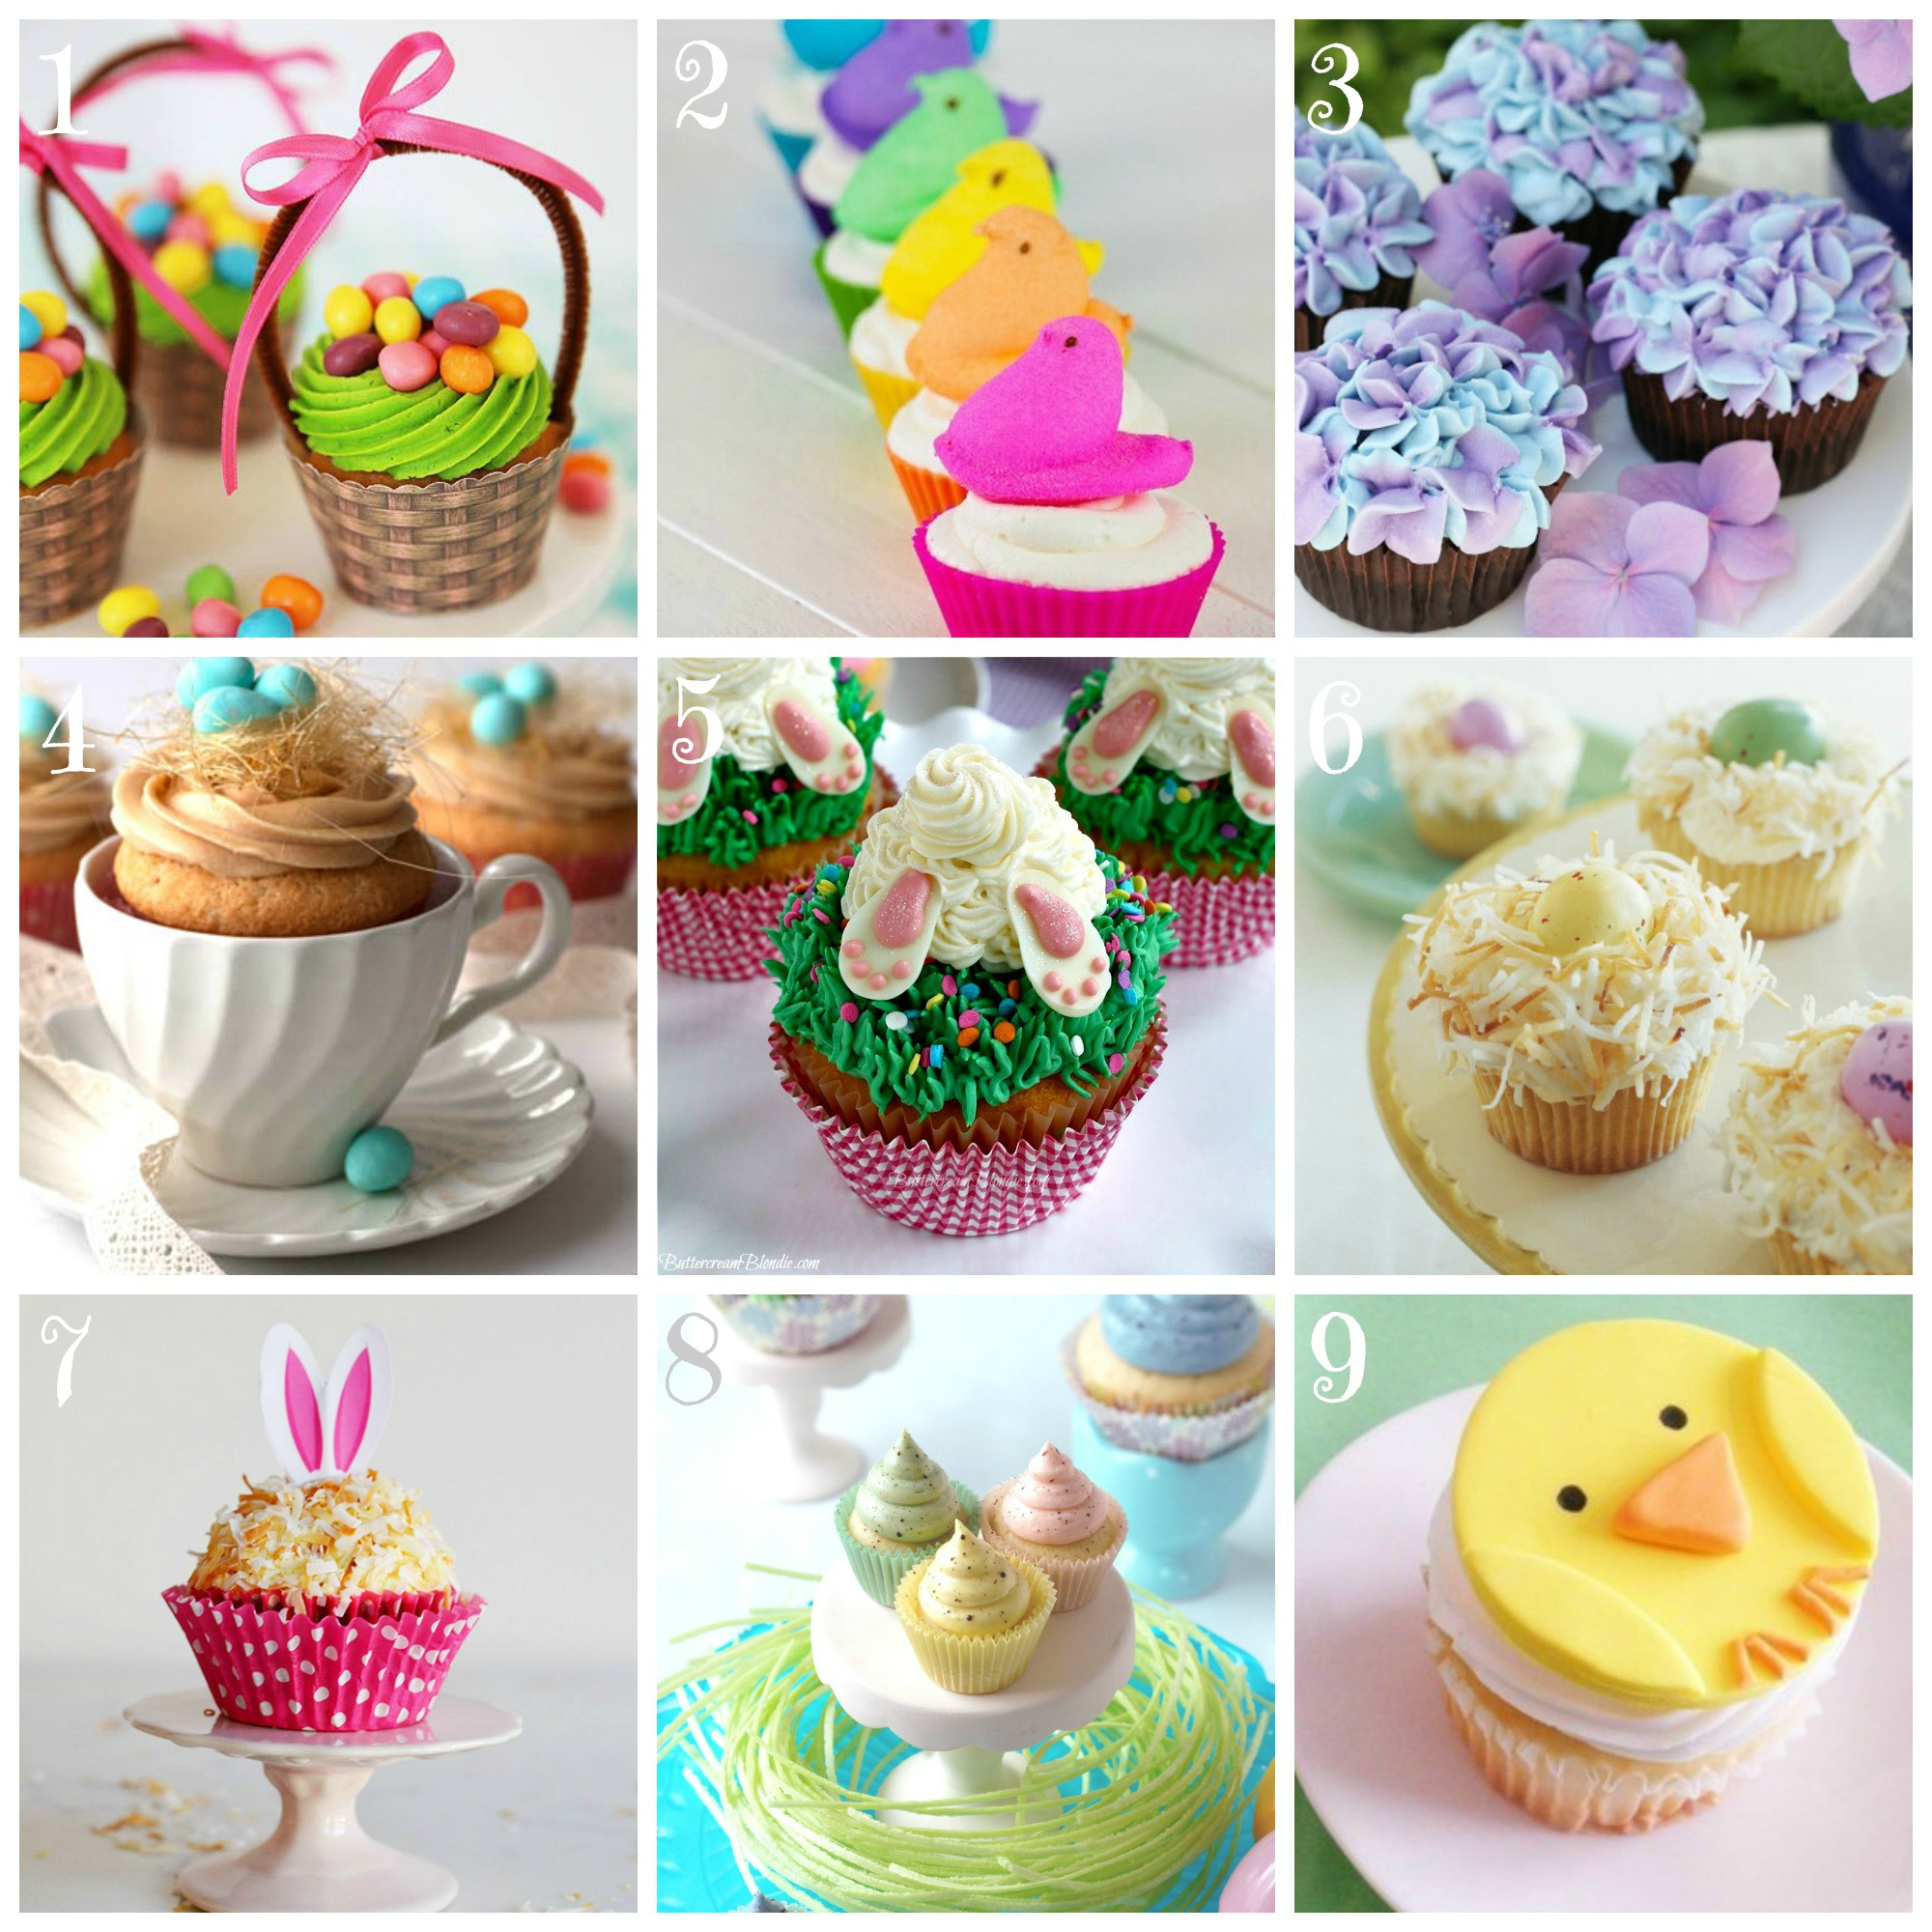 Cupcake Easter Desserts  Top 9 Easter Cupcake Recipes